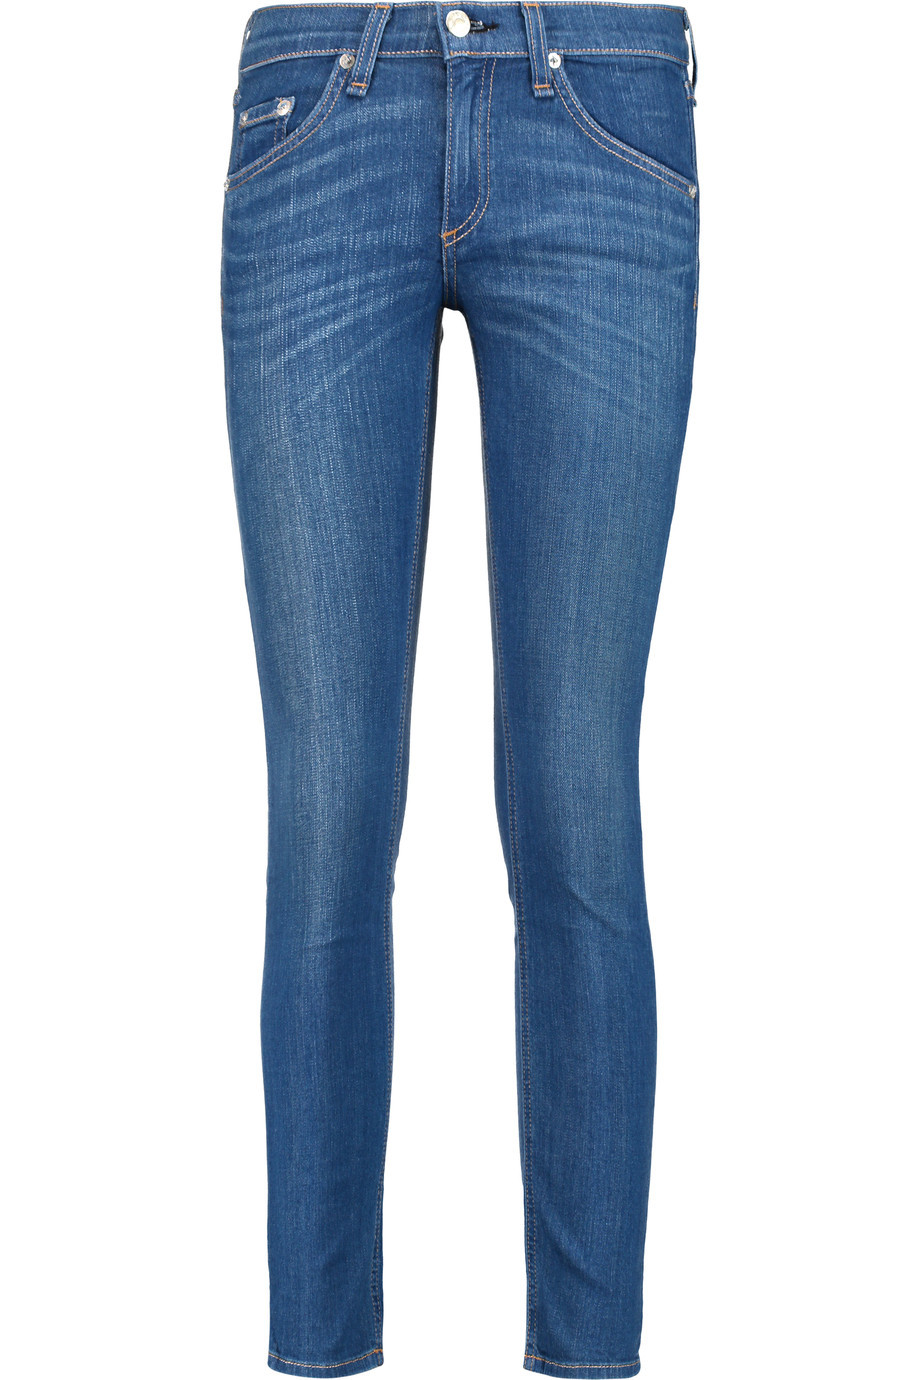 Capri Low Rise Skinny Jeans Dark Denim - style: skinny leg; length: standard; pattern: plain; pocket detail: traditional 5 pocket; waist: mid/regular rise; predominant colour: denim; occasions: casual; fibres: cotton - stretch; jeans detail: whiskering; texture group: denim; pattern type: fabric; season: s/s 2016; wardrobe: basic